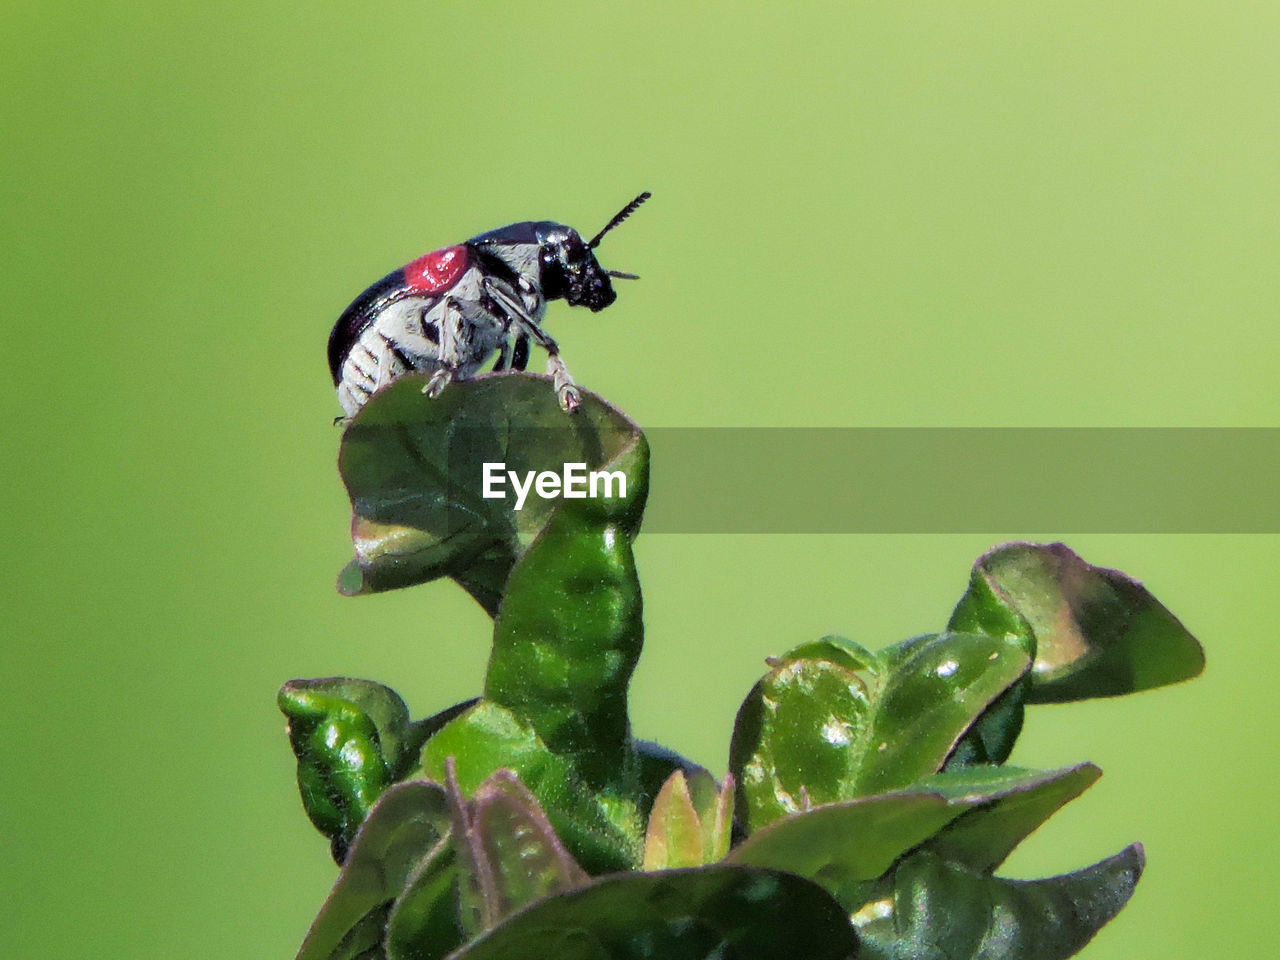 Close-up of beetle on plant